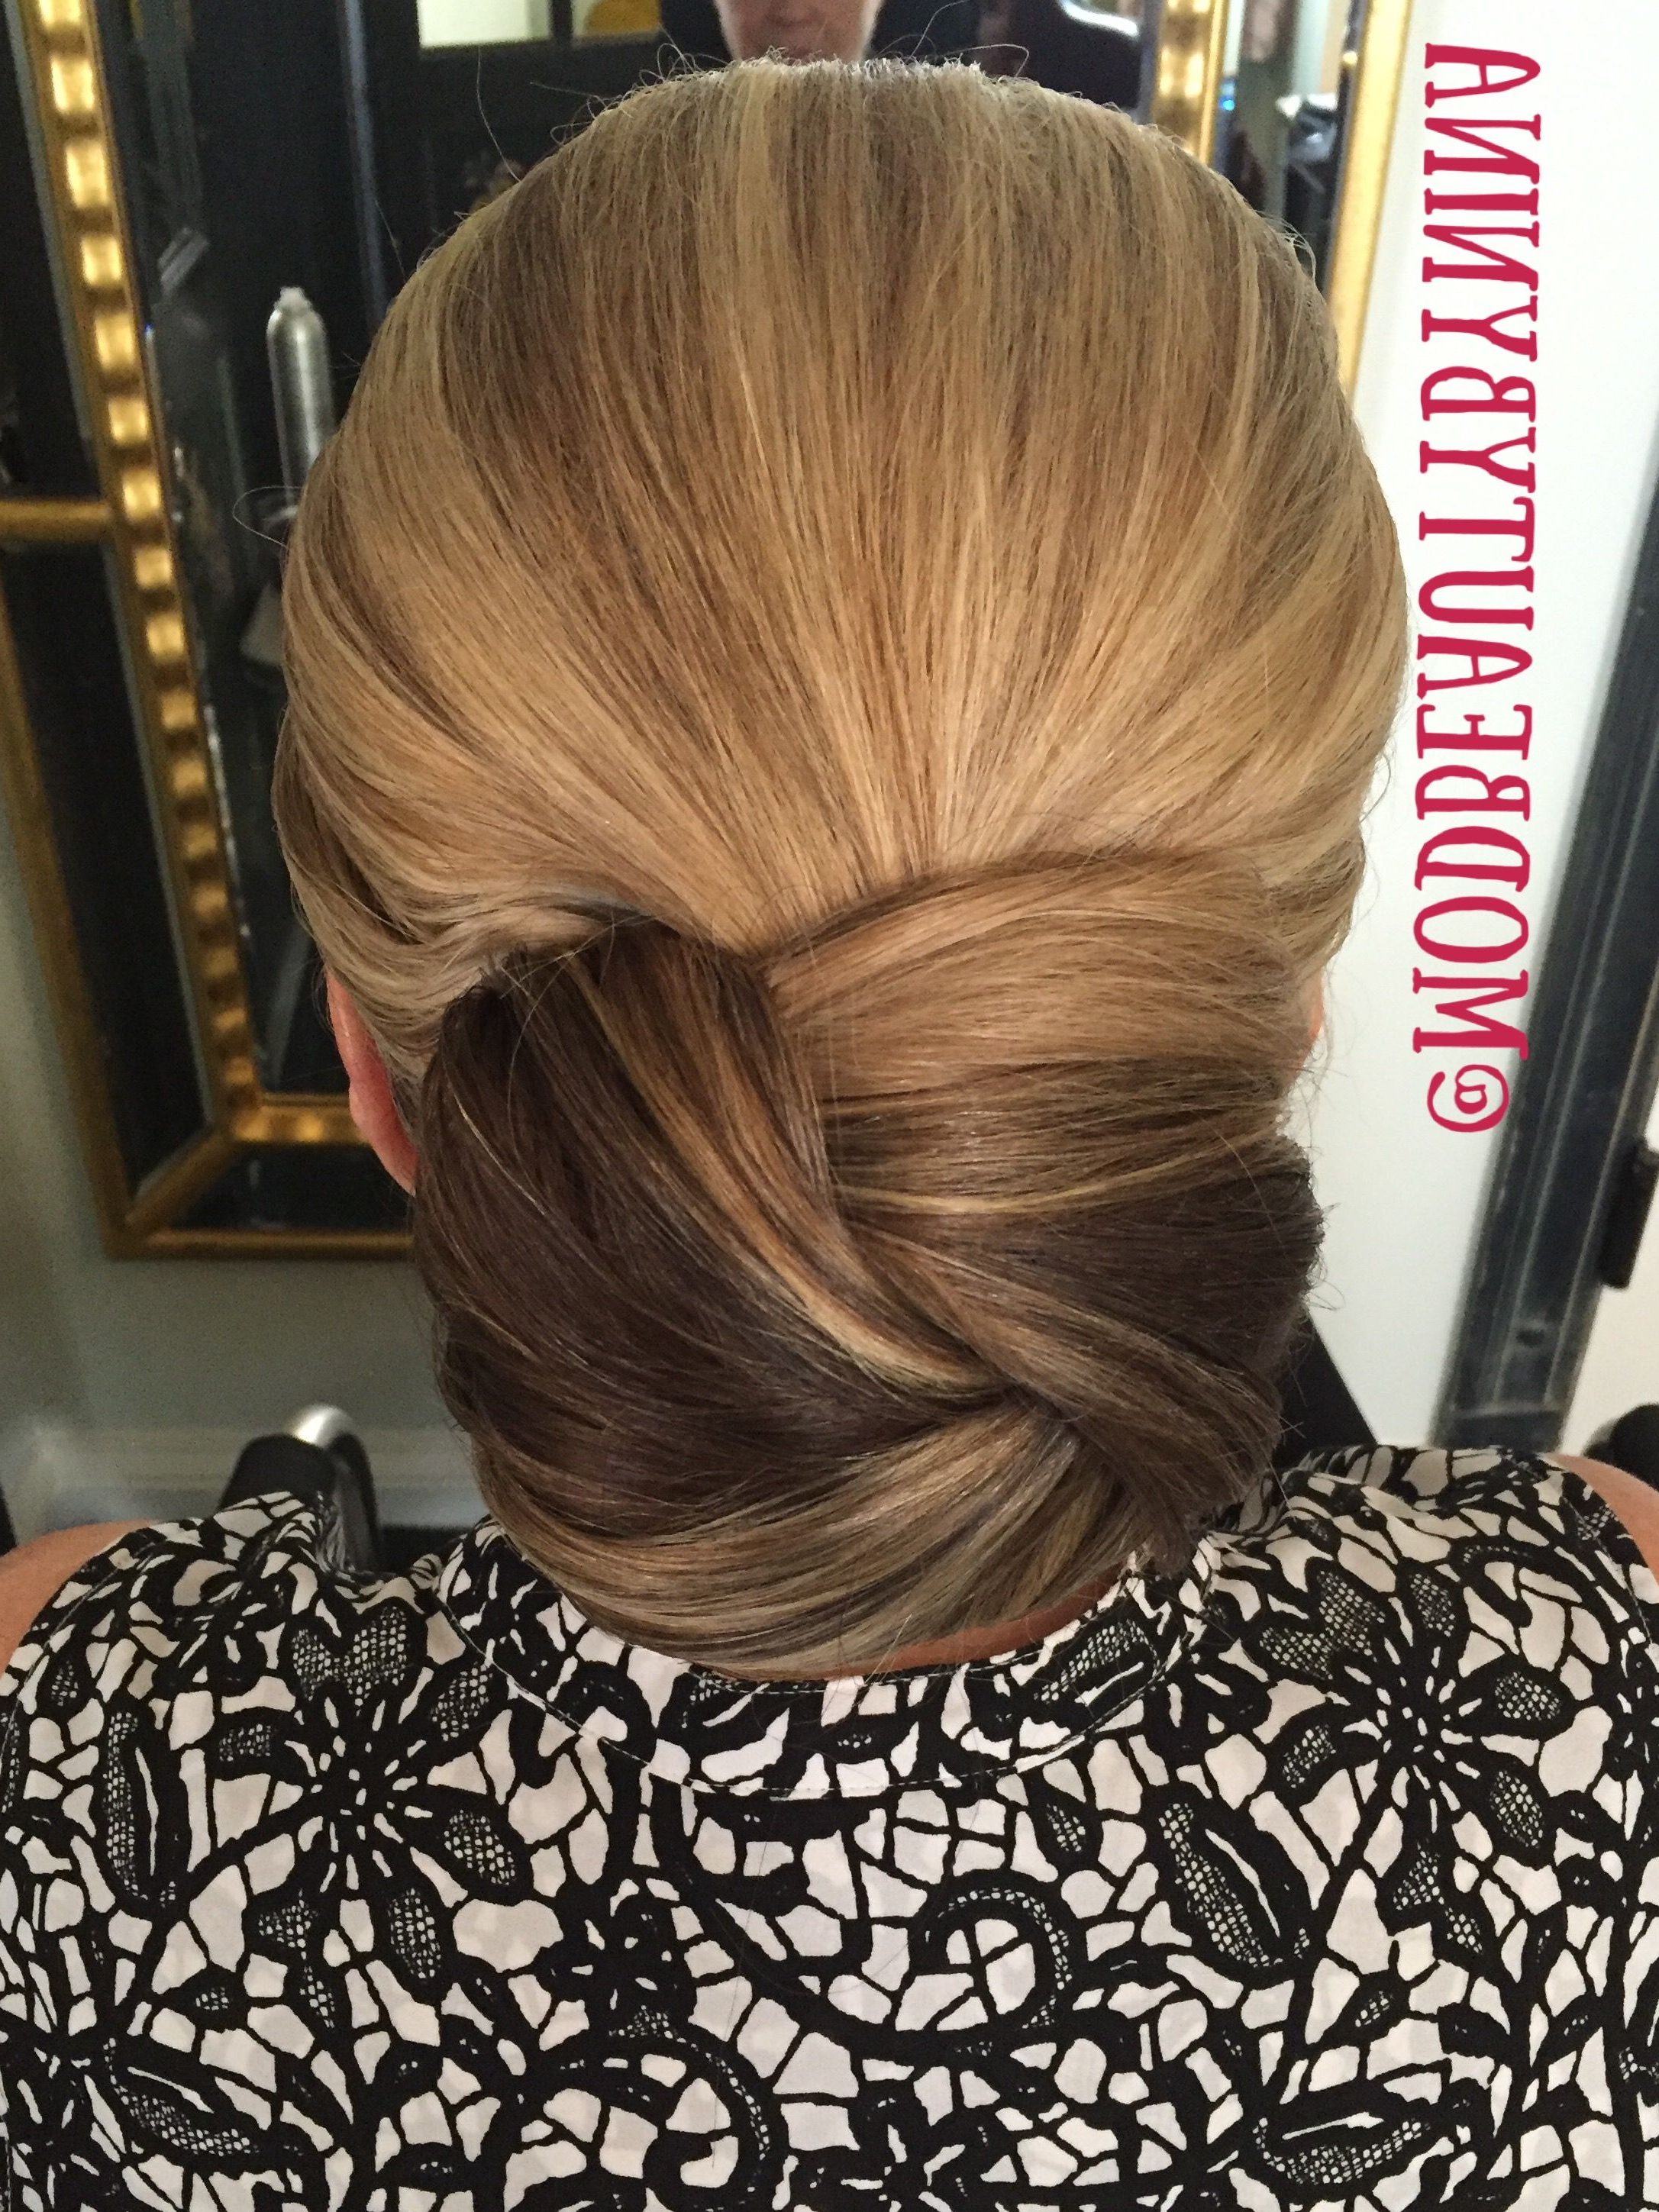 Best And Newest Blonde And Bubbly Hairstyles For Wedding Inside Mob Hair + Wedding Hair + Mother Of The Bride Hair + Wedding Ideas + (View 8 of 20)